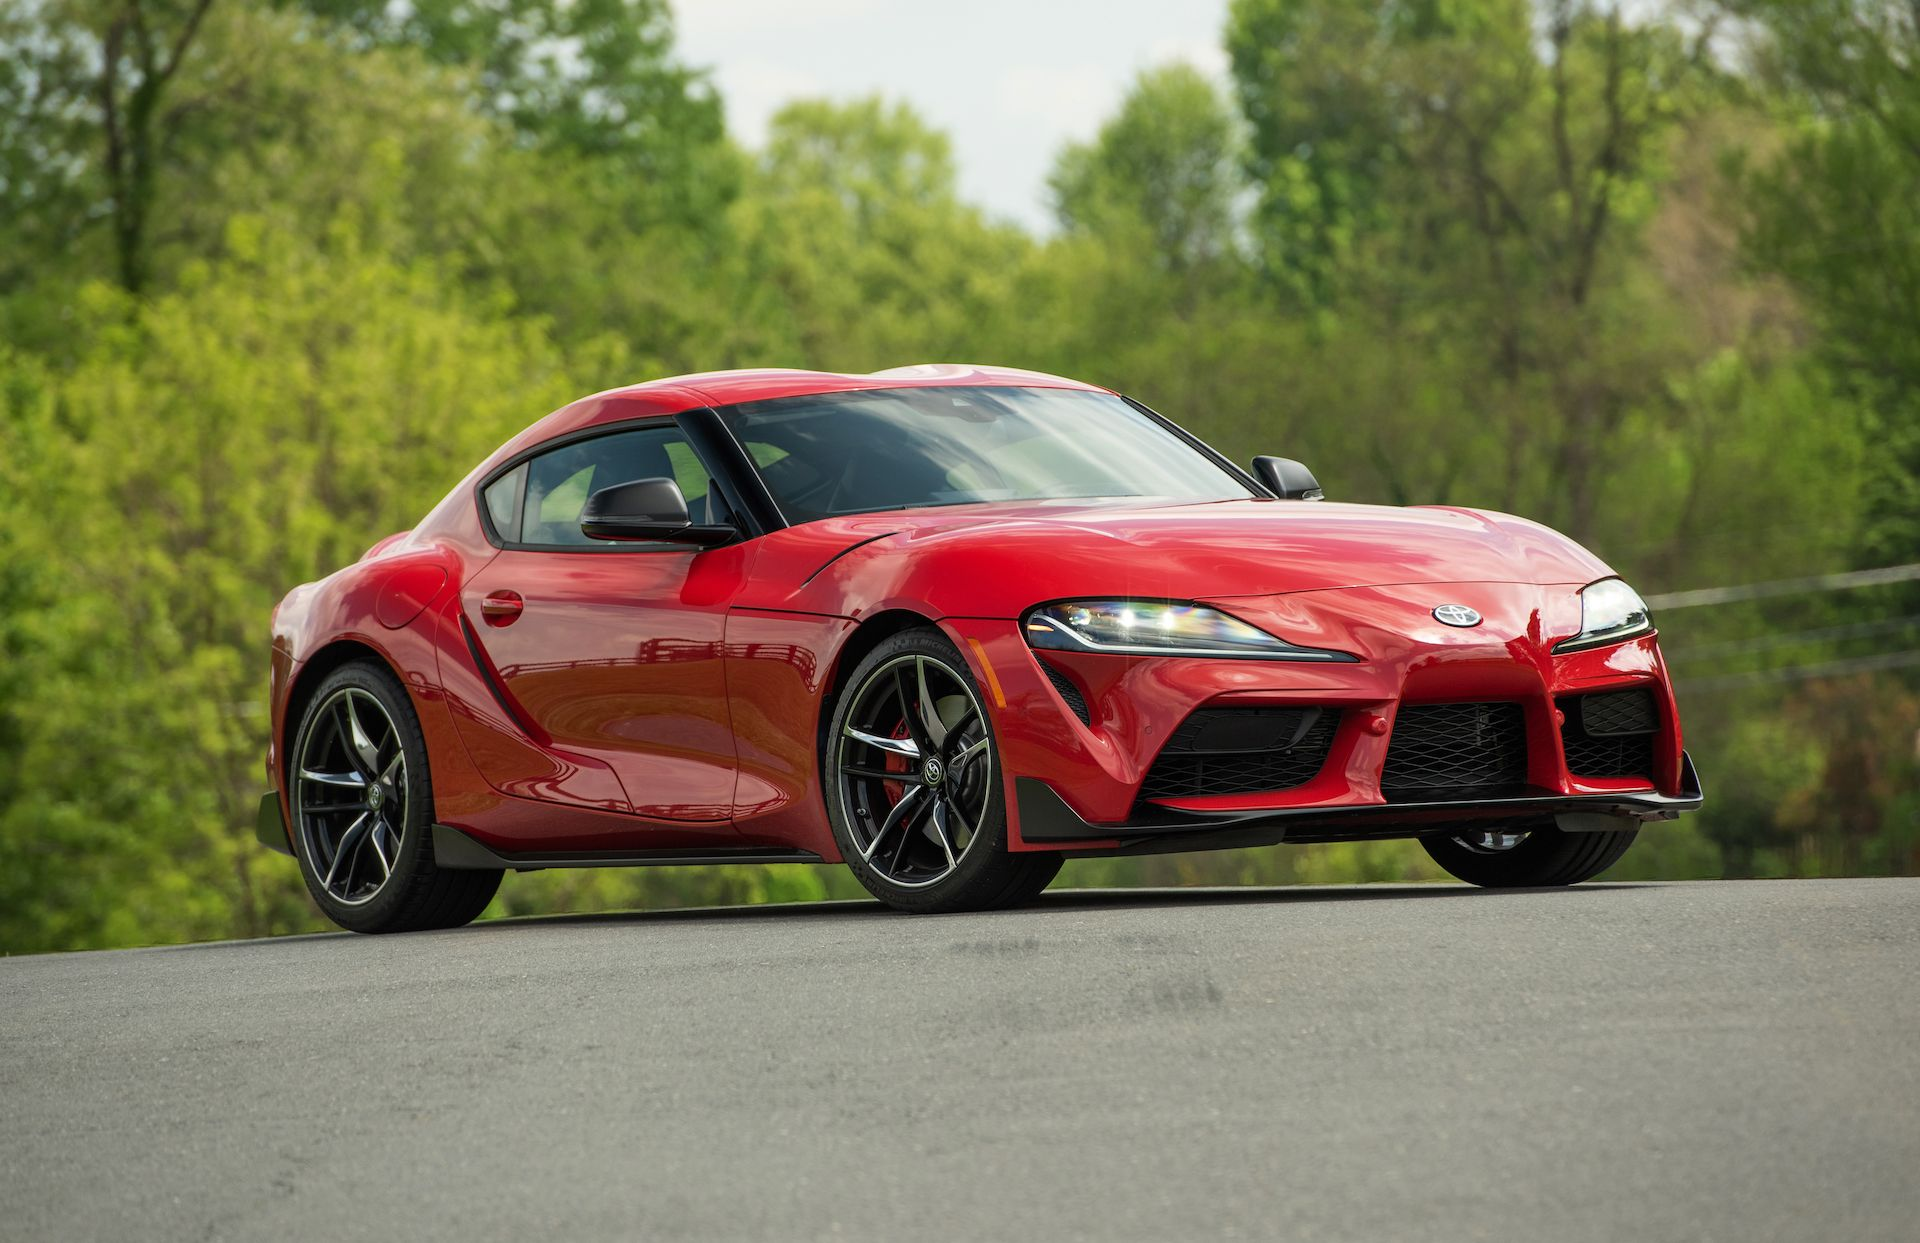 2020 Toyota Supra Is Pretty Much Everything The Fans Were Hoping It Was Worth The Long Wait Toyota Supra Bmw Toyota